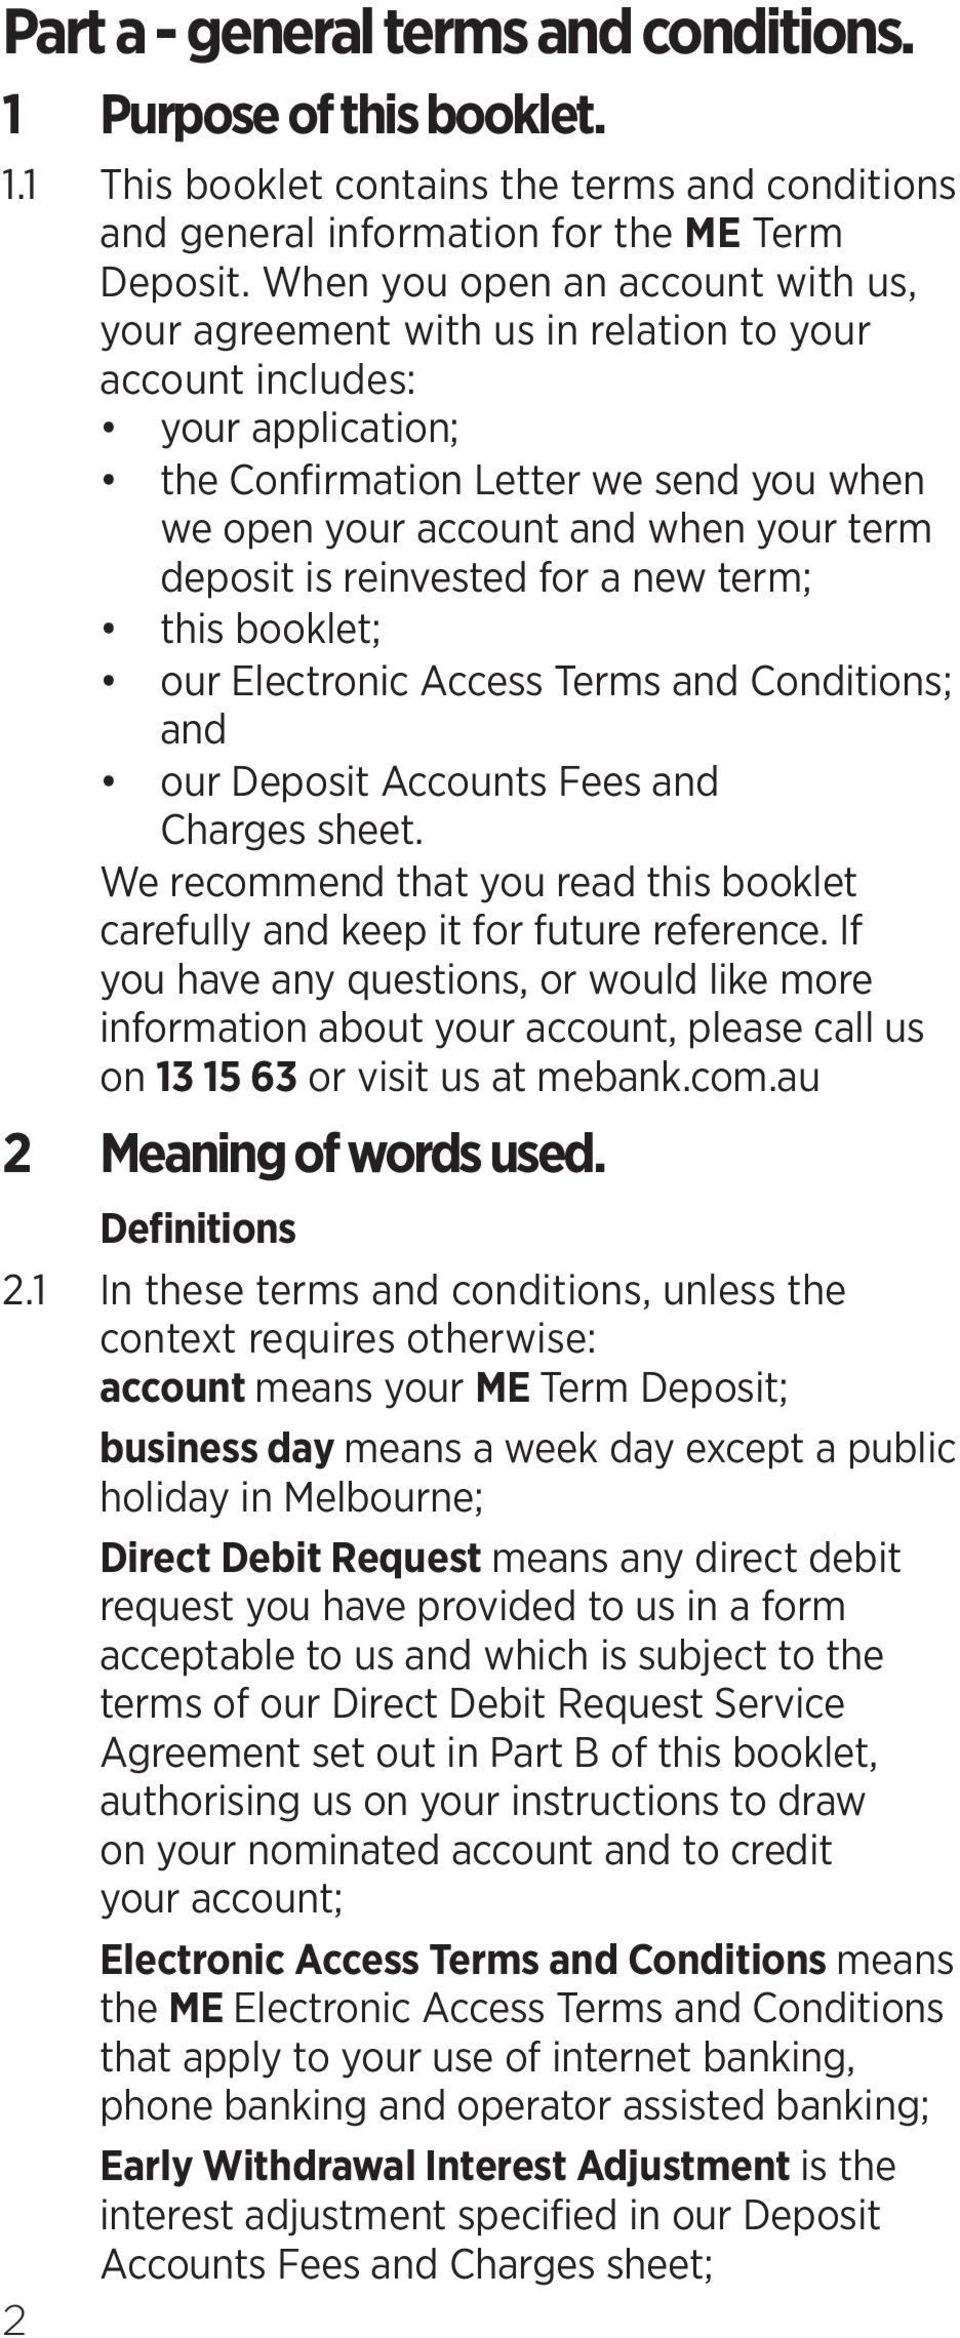 deposit is reinvested for a new term; this booklet; our Electronic Access Terms and Conditions; and our Deposit Accounts Fees and Charges sheet.